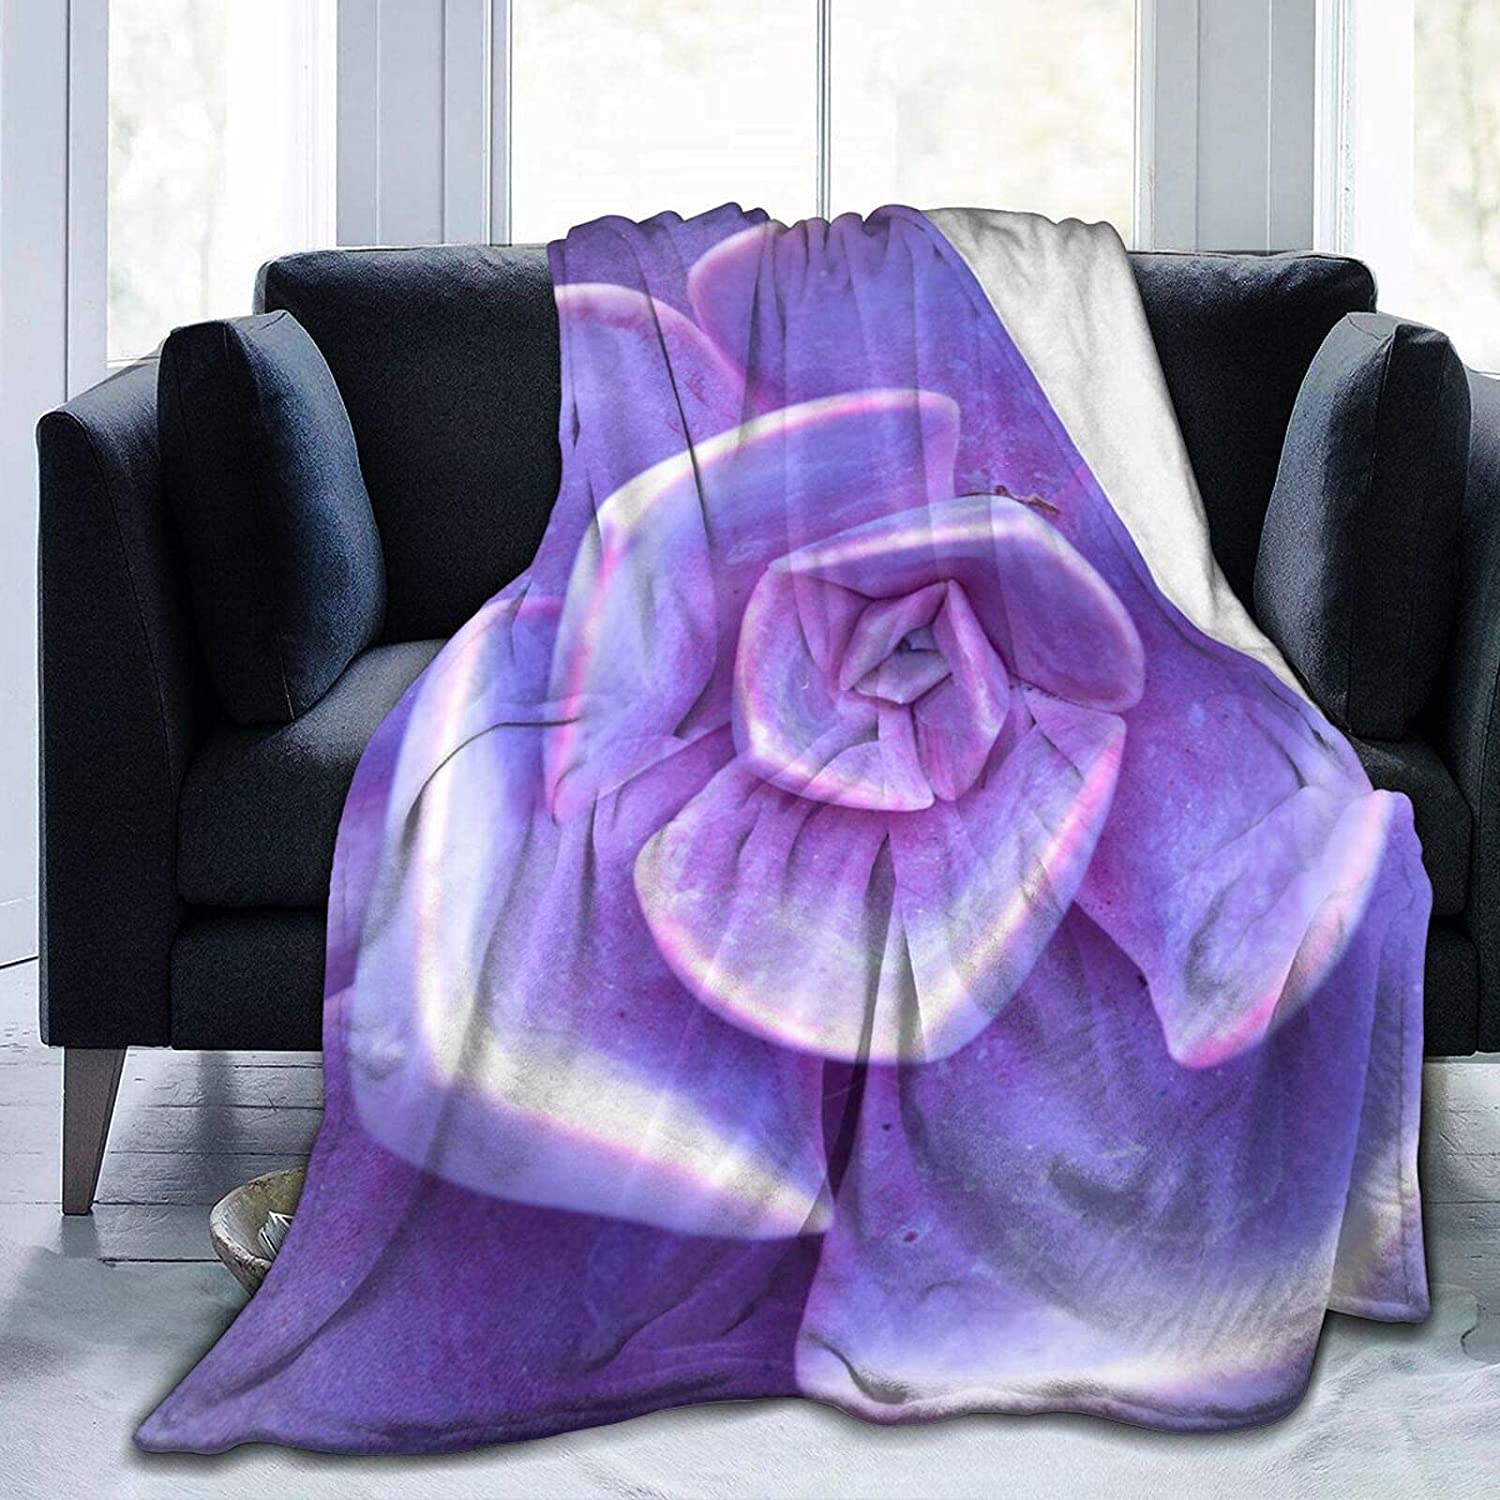 Throw Blankets Bed Purple Clearance SALE Limited time Flower NEW before selling Plus Microfiber Cactus